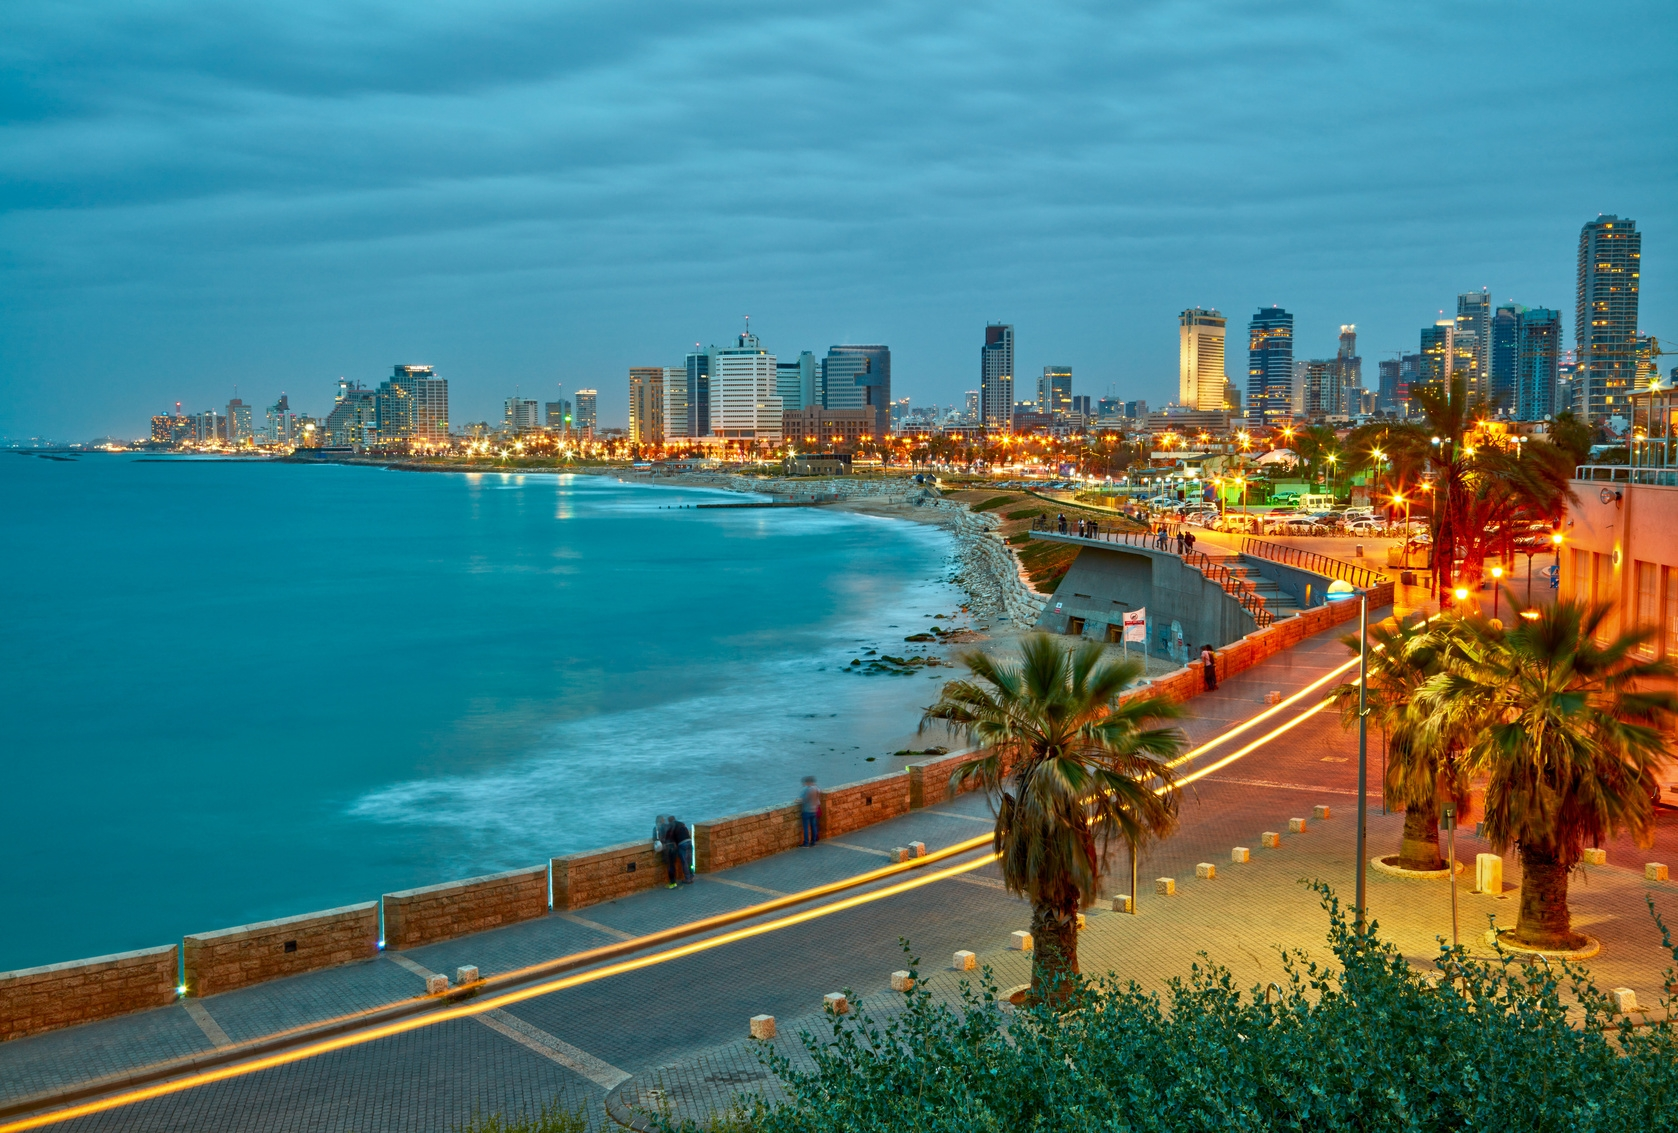 TEL AVIV E GERUSALEMME, TREKKING URBANO - National geographic expeditions